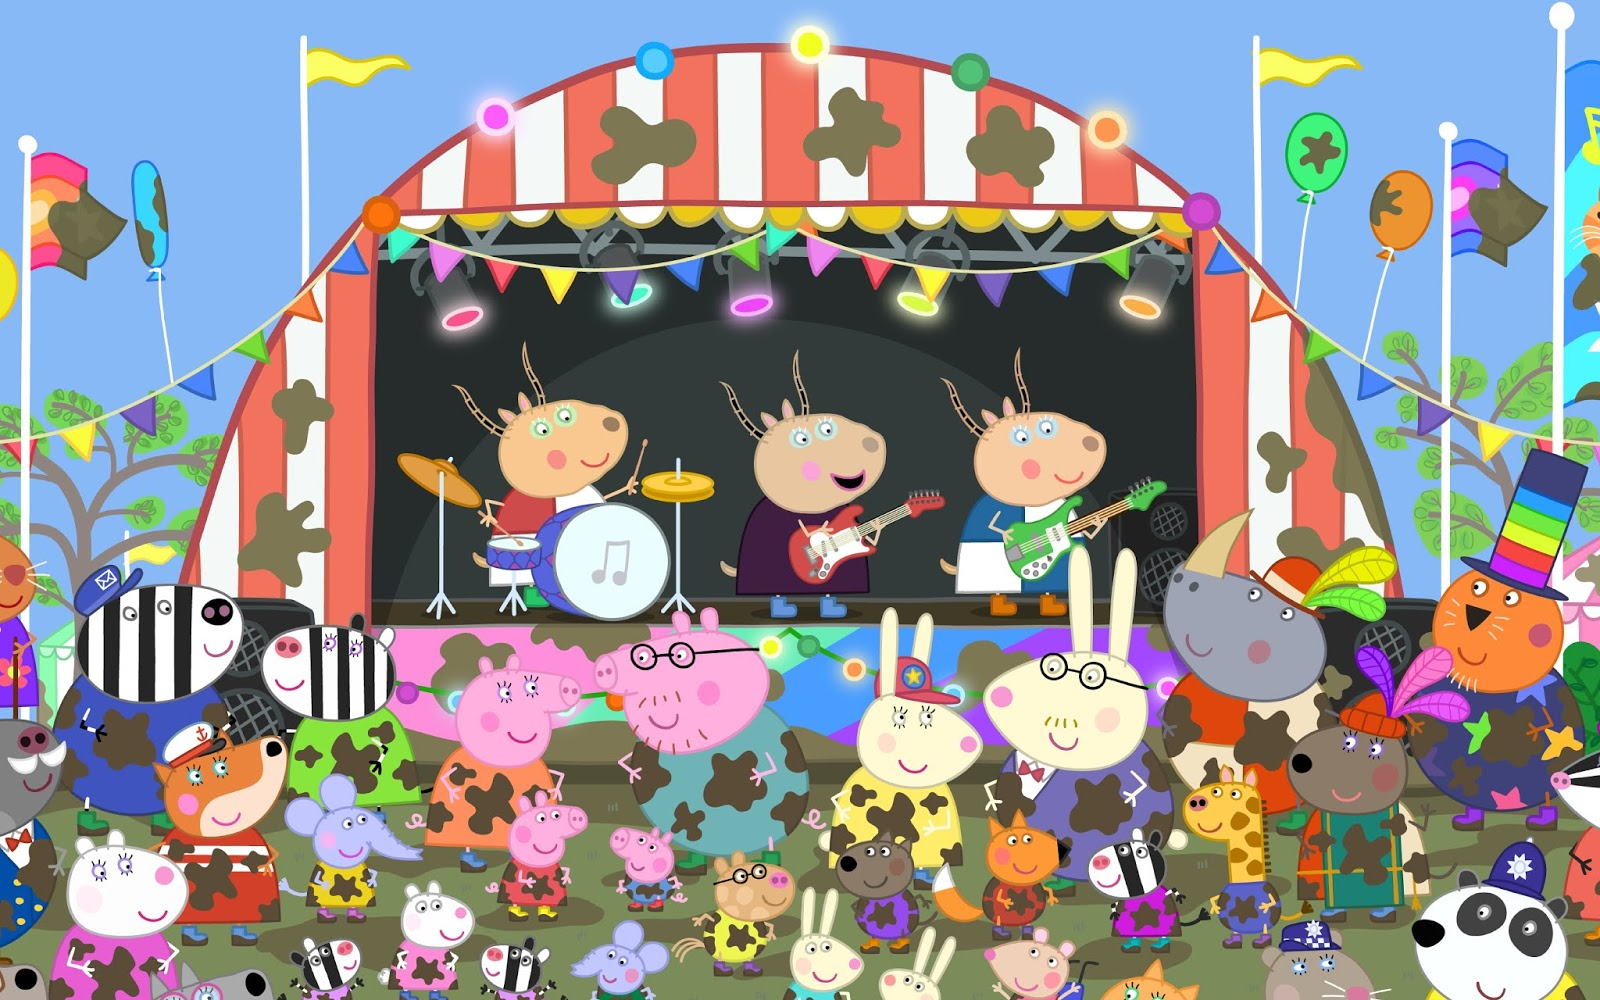 NickALive!: Peppa Pig And Friends Return To The Big Screen To Celebrate 15 Years Of Muddy